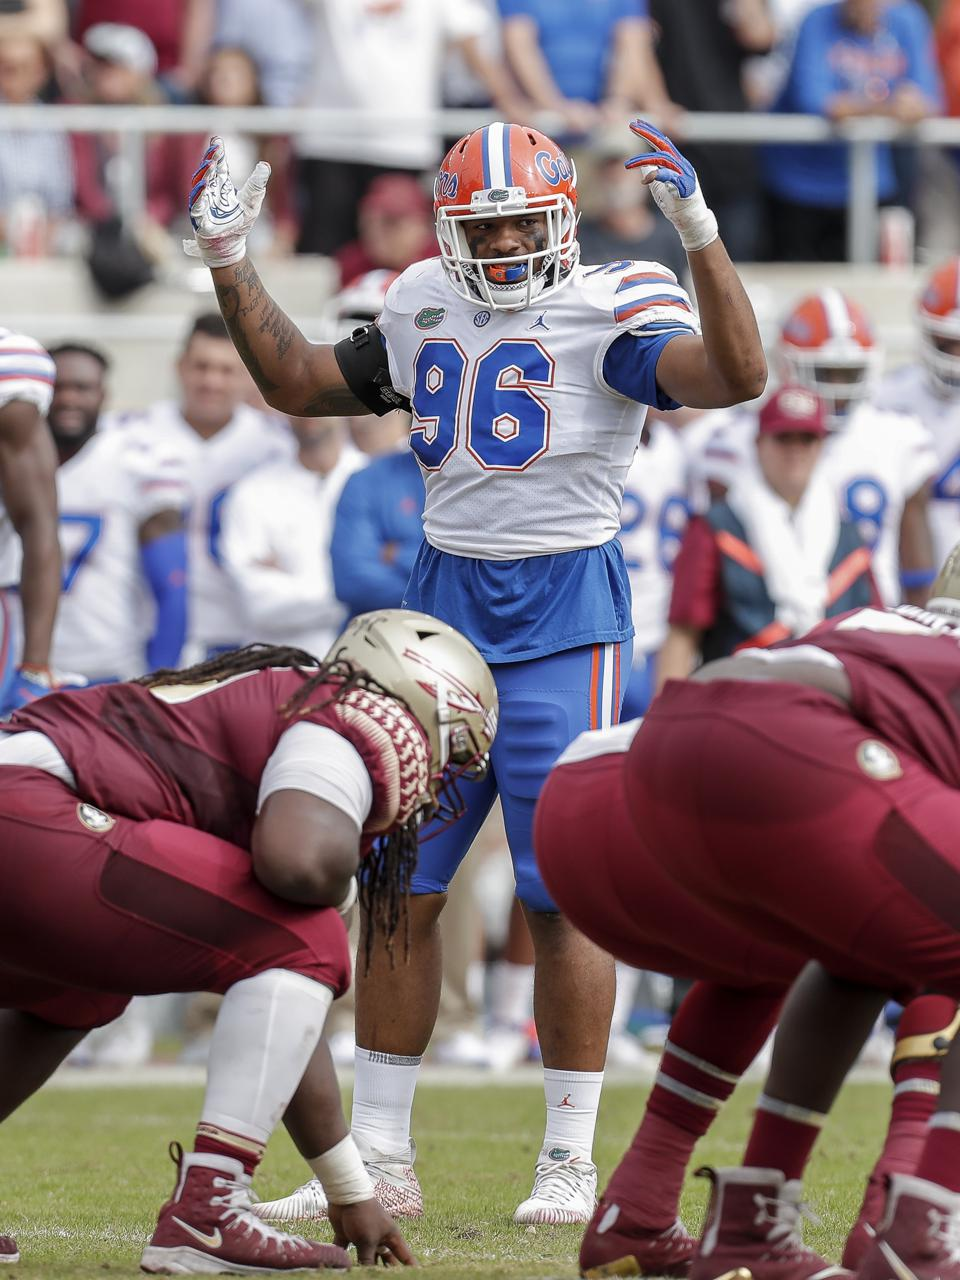 The Florida Gators face off against longtime rival Florida State Seminoles at Doak Campbell Stadium.